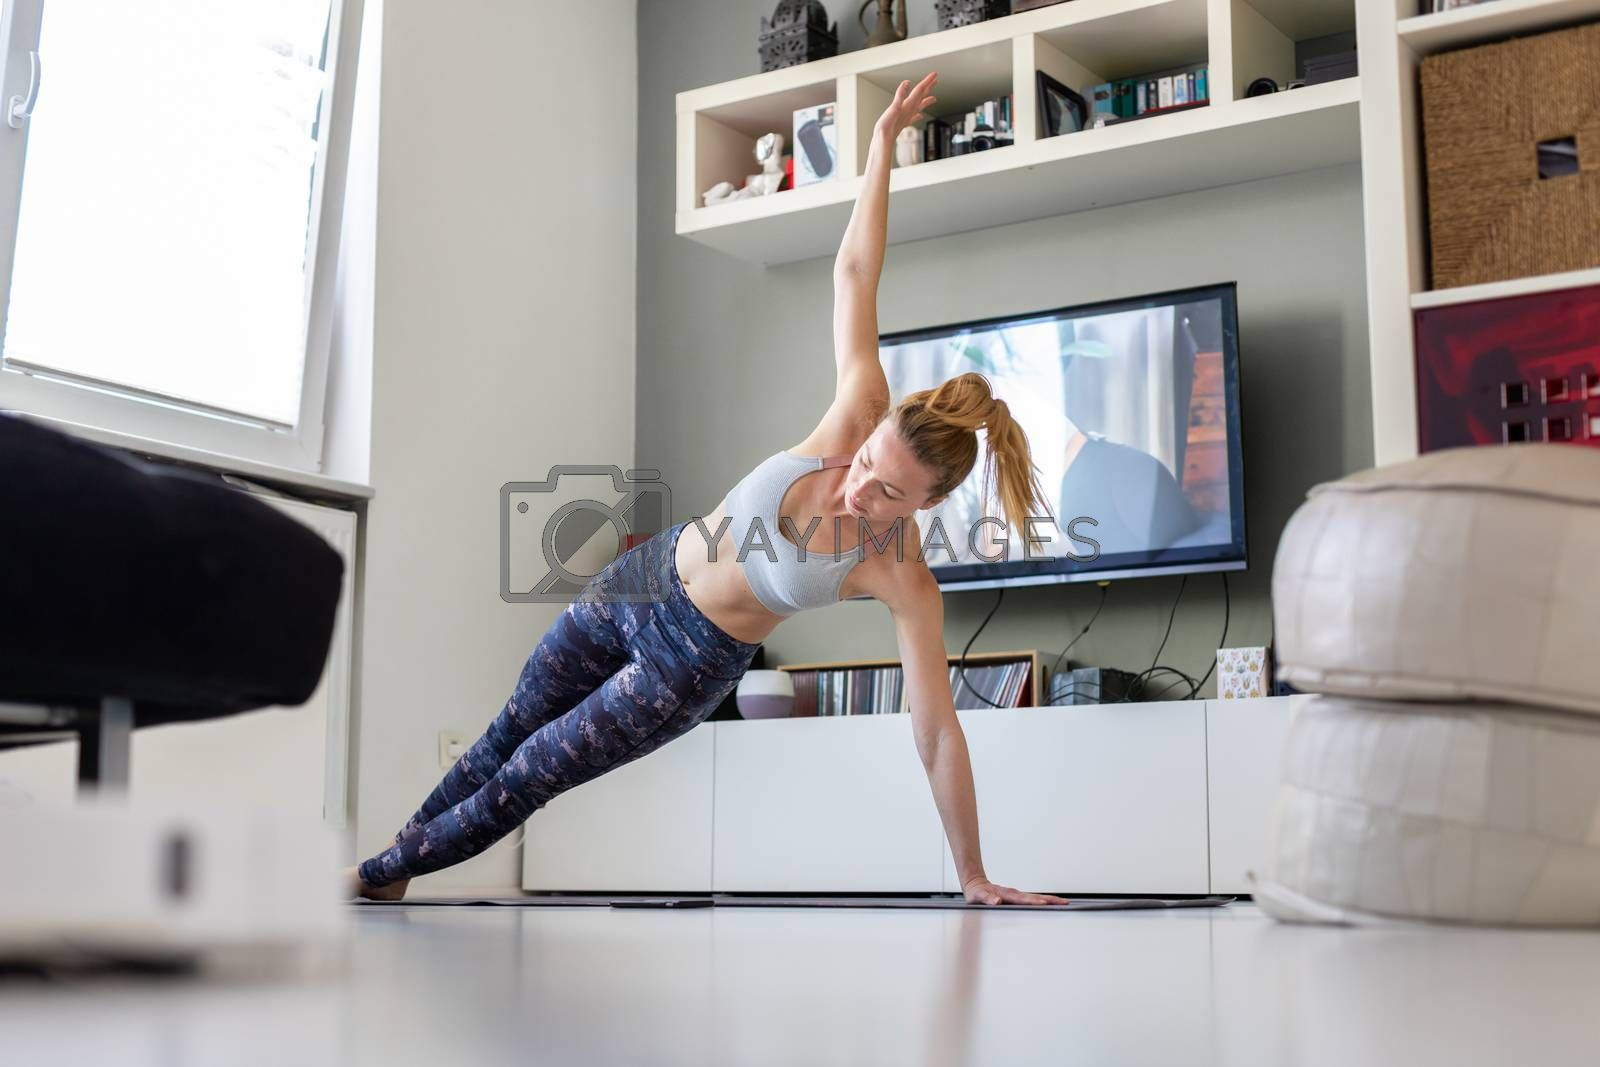 Attractive sporty woman working out at home, doing pilates exercise in front of television in her living room. Social distancing. Stay healthy and stay at home during corona virus pandemic.